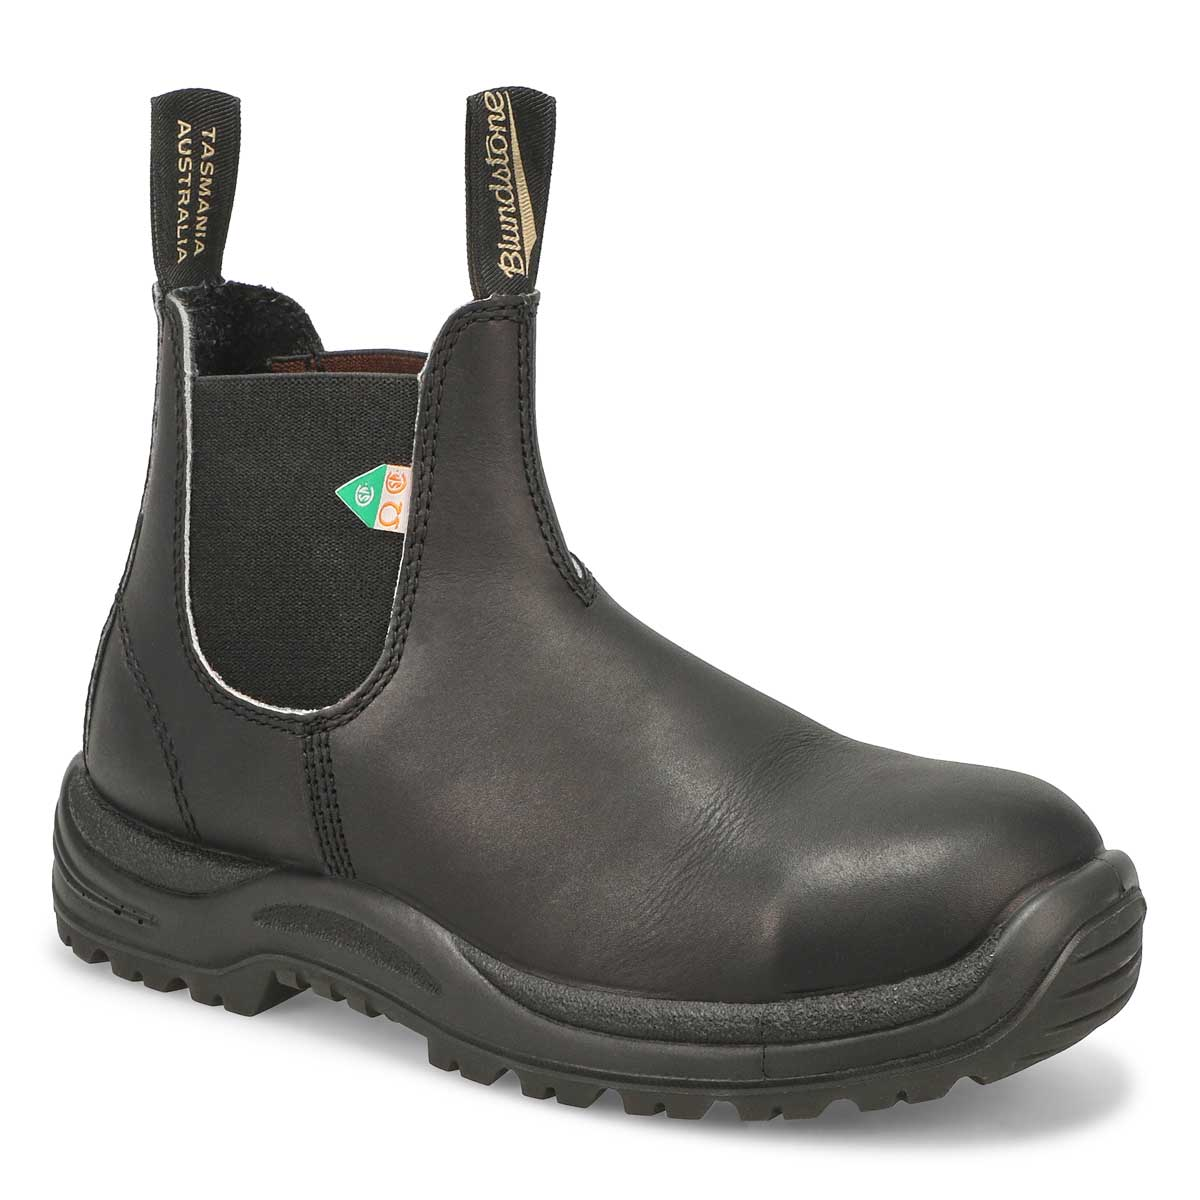 Unisex CSA GREENPATCH pull-on boots - UK SIZING